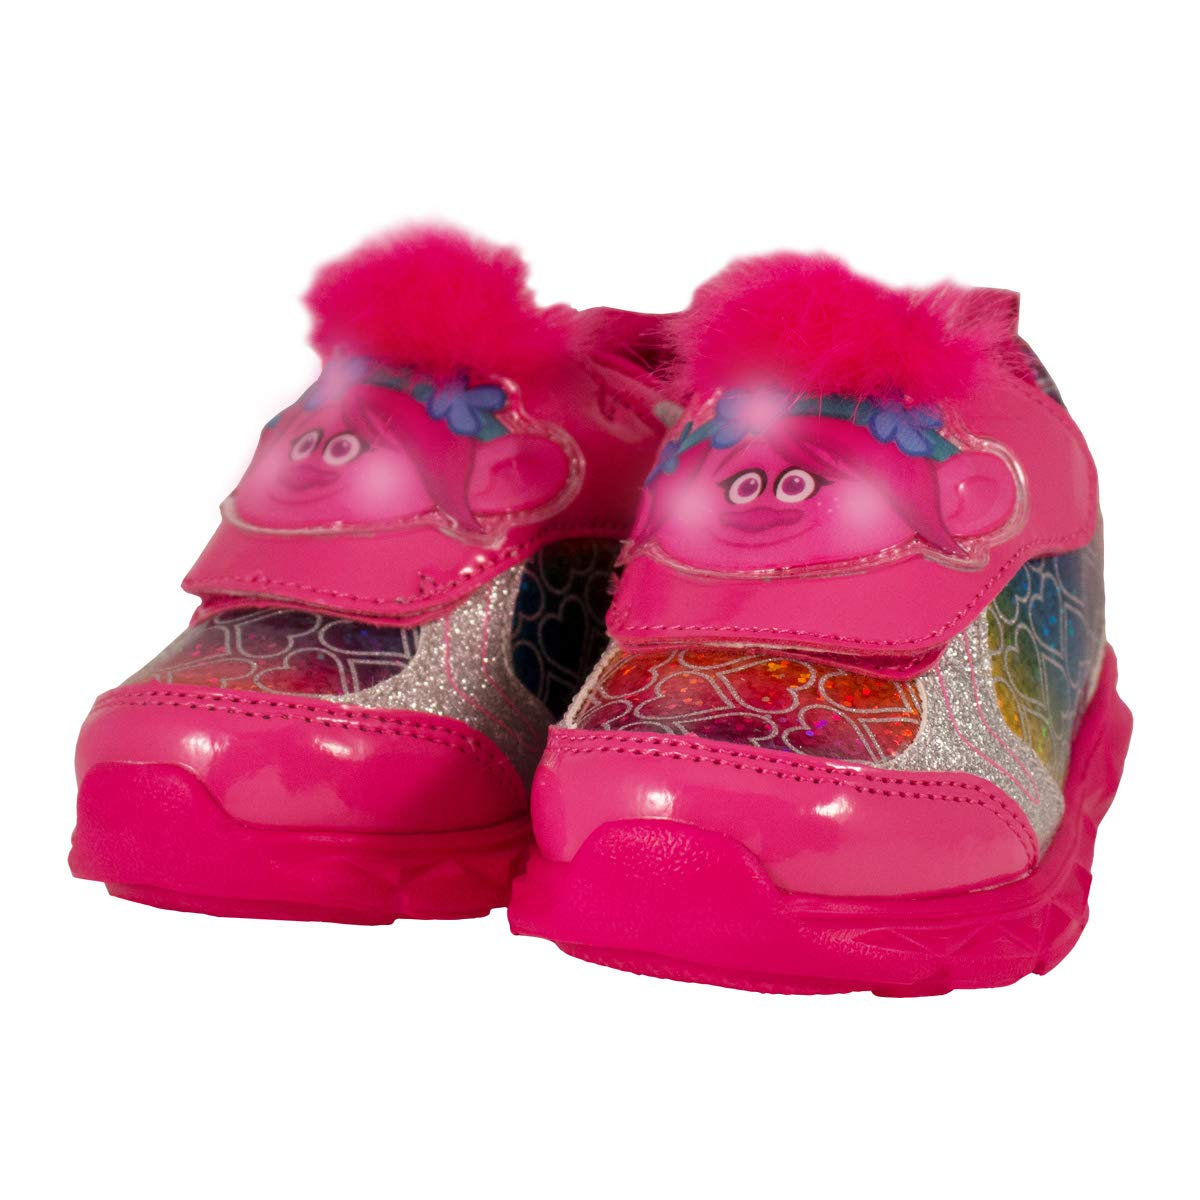 7e68f63c4c2b0 Favorite Characters Trolls Poppy Pink Lighted Athletic Shoes  (Toddler/Little Kid)